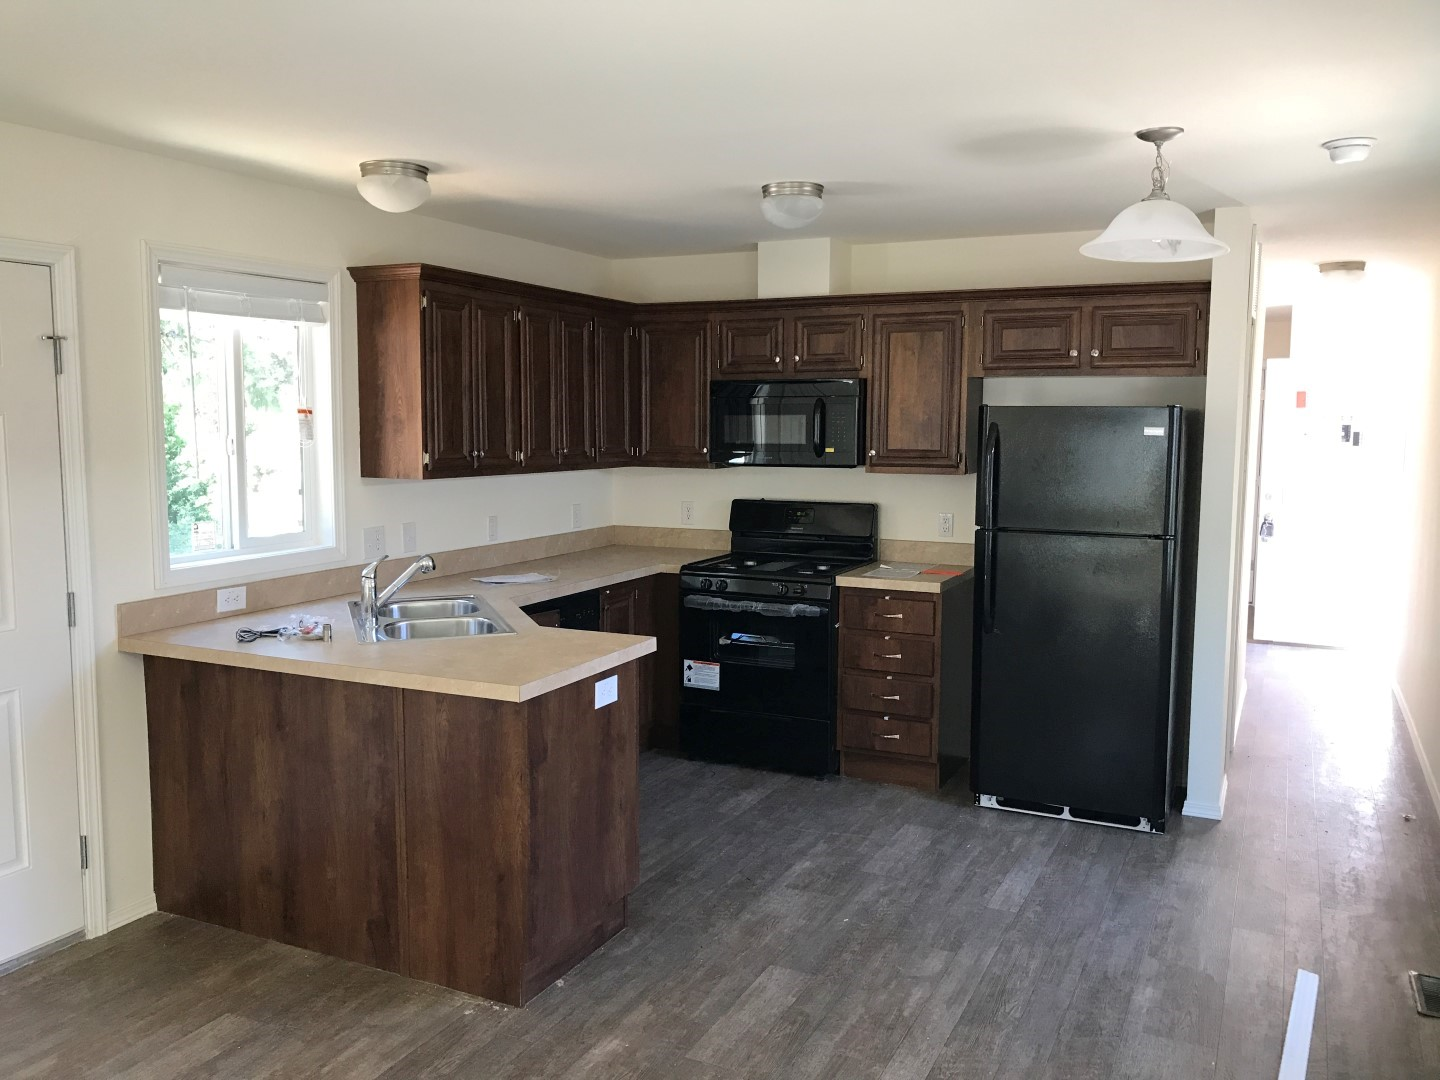 ... Laminate Flooring Throughout Common Areas, Full Standard Kitchen With  Brand New Appliances, Carpeted Bedrooms, And Pristine Bathrooms.